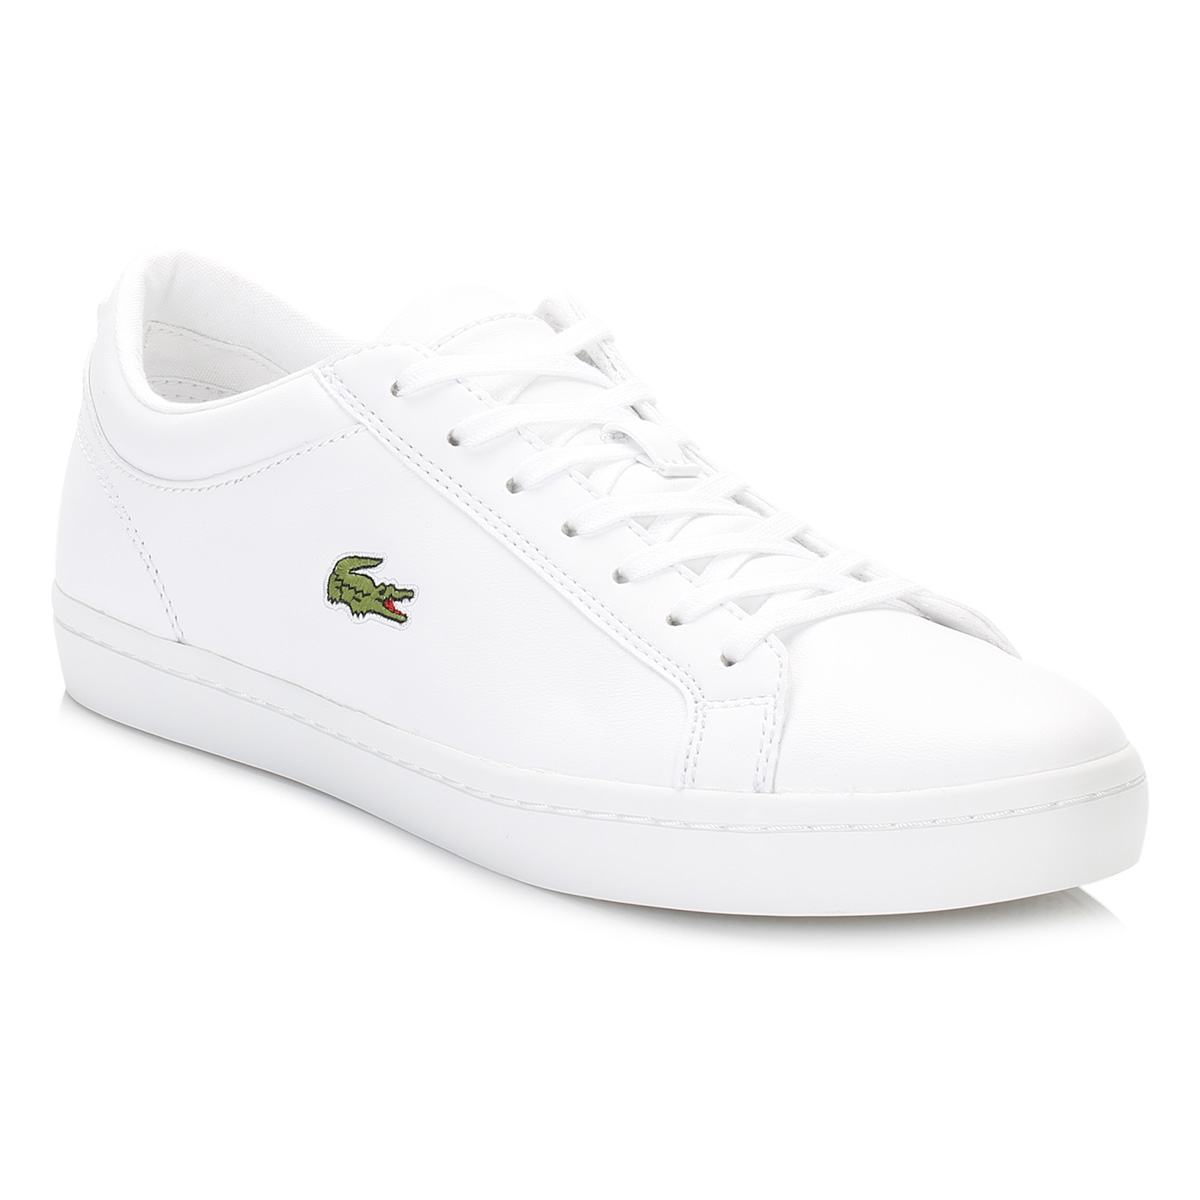 3a7ddce0824 Lacoste Womens White Trainers